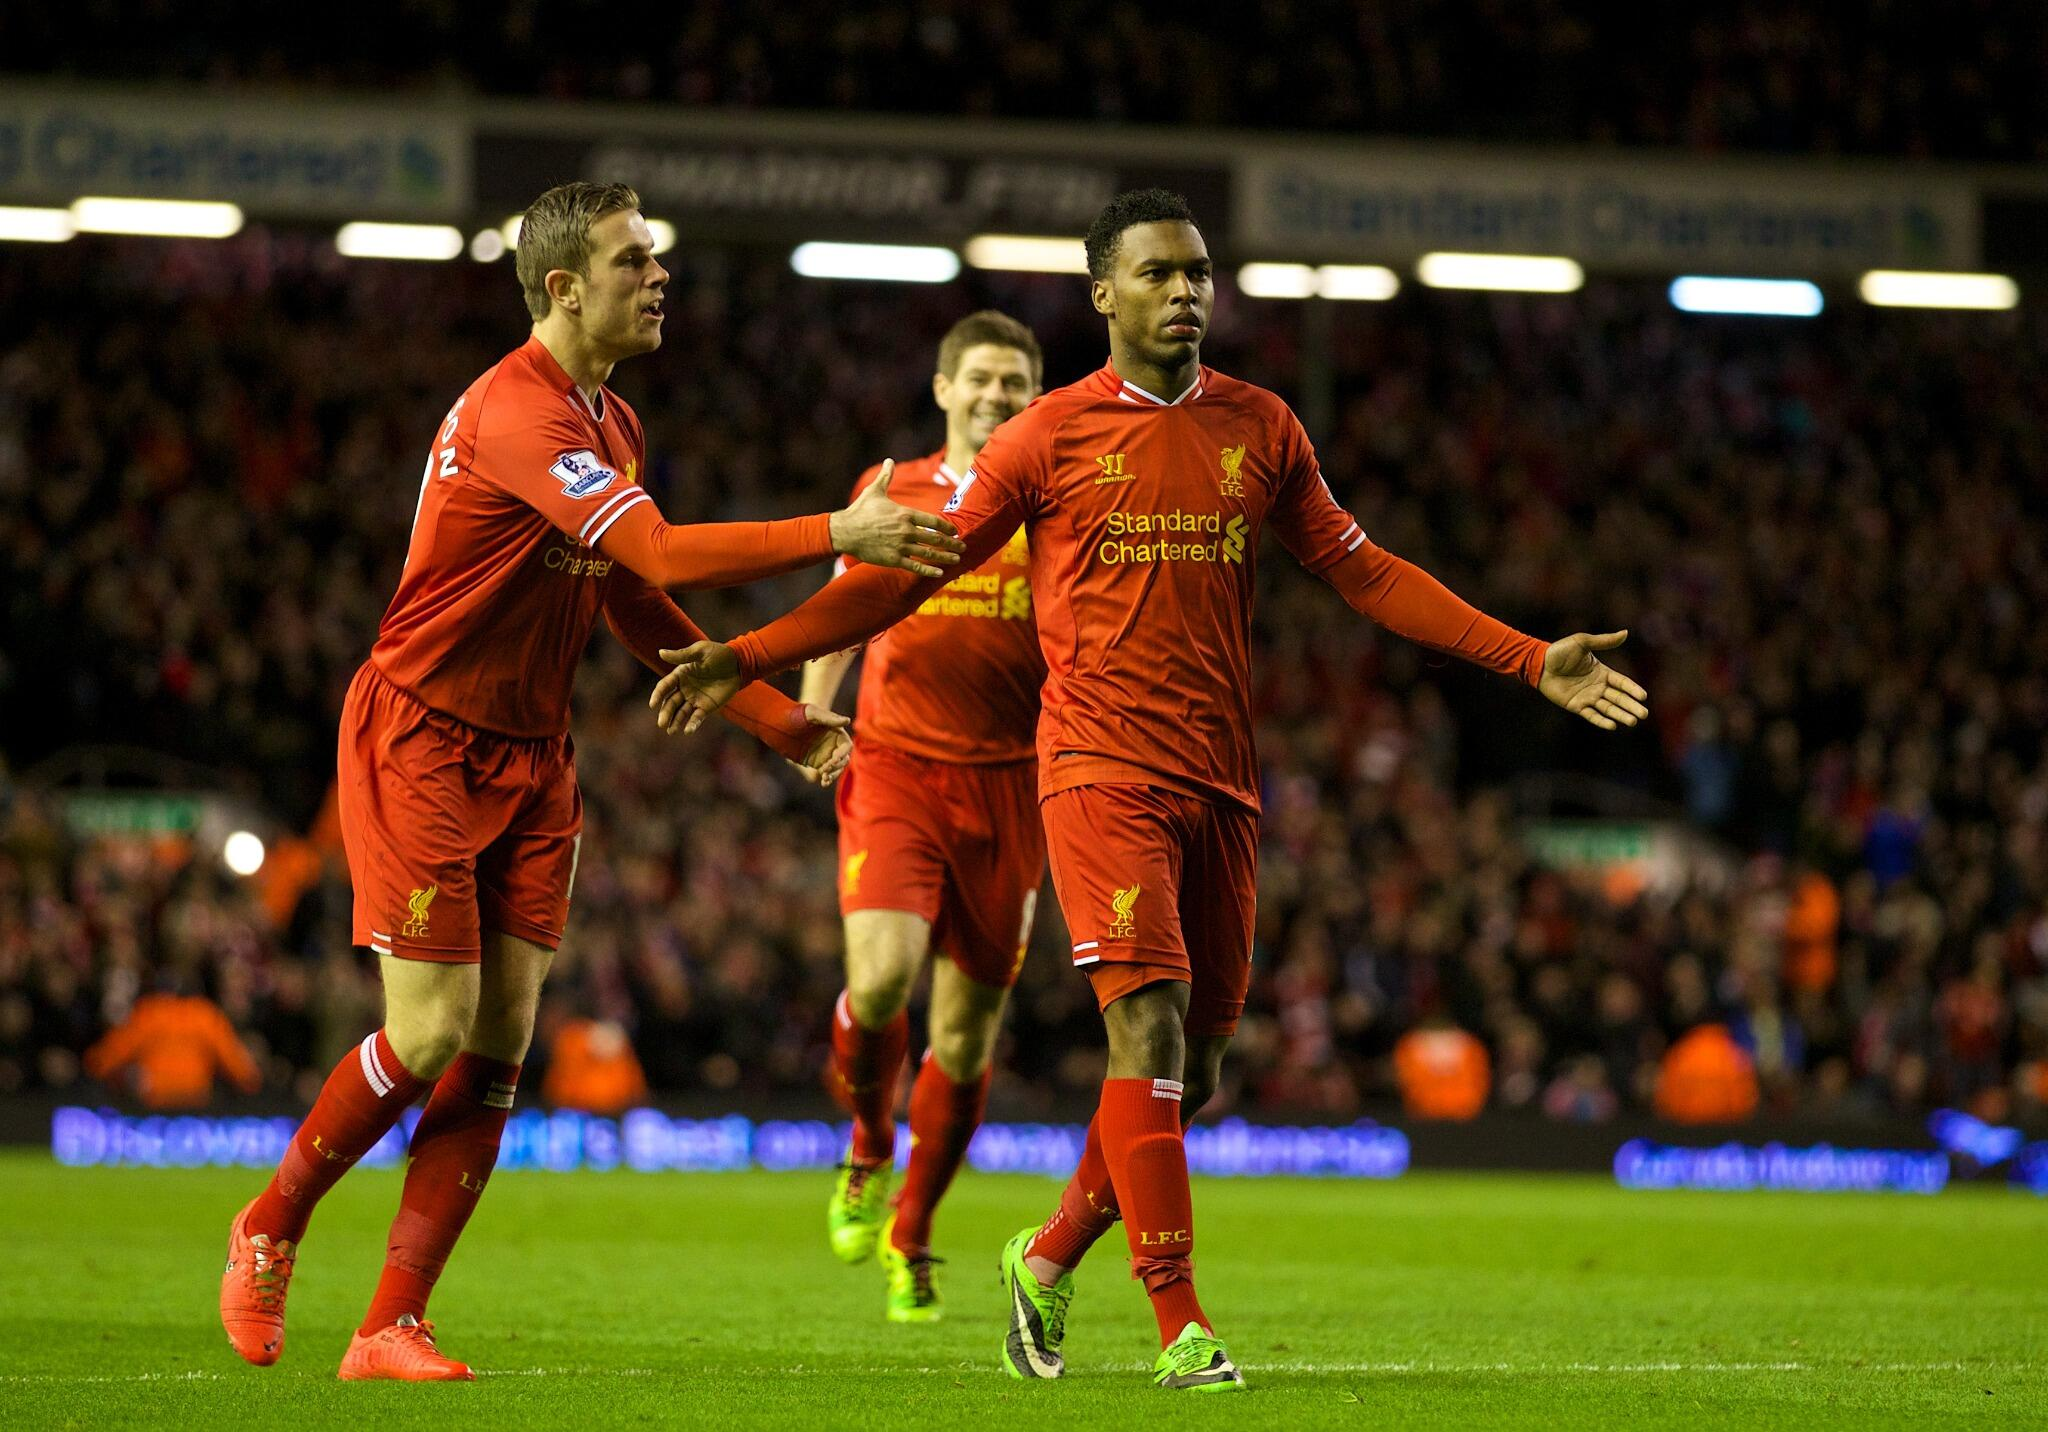 PHOTO: @D_Sturridge celebrates giving #LFC a two-goal cushion http://t.co/rXid1MkE5Y